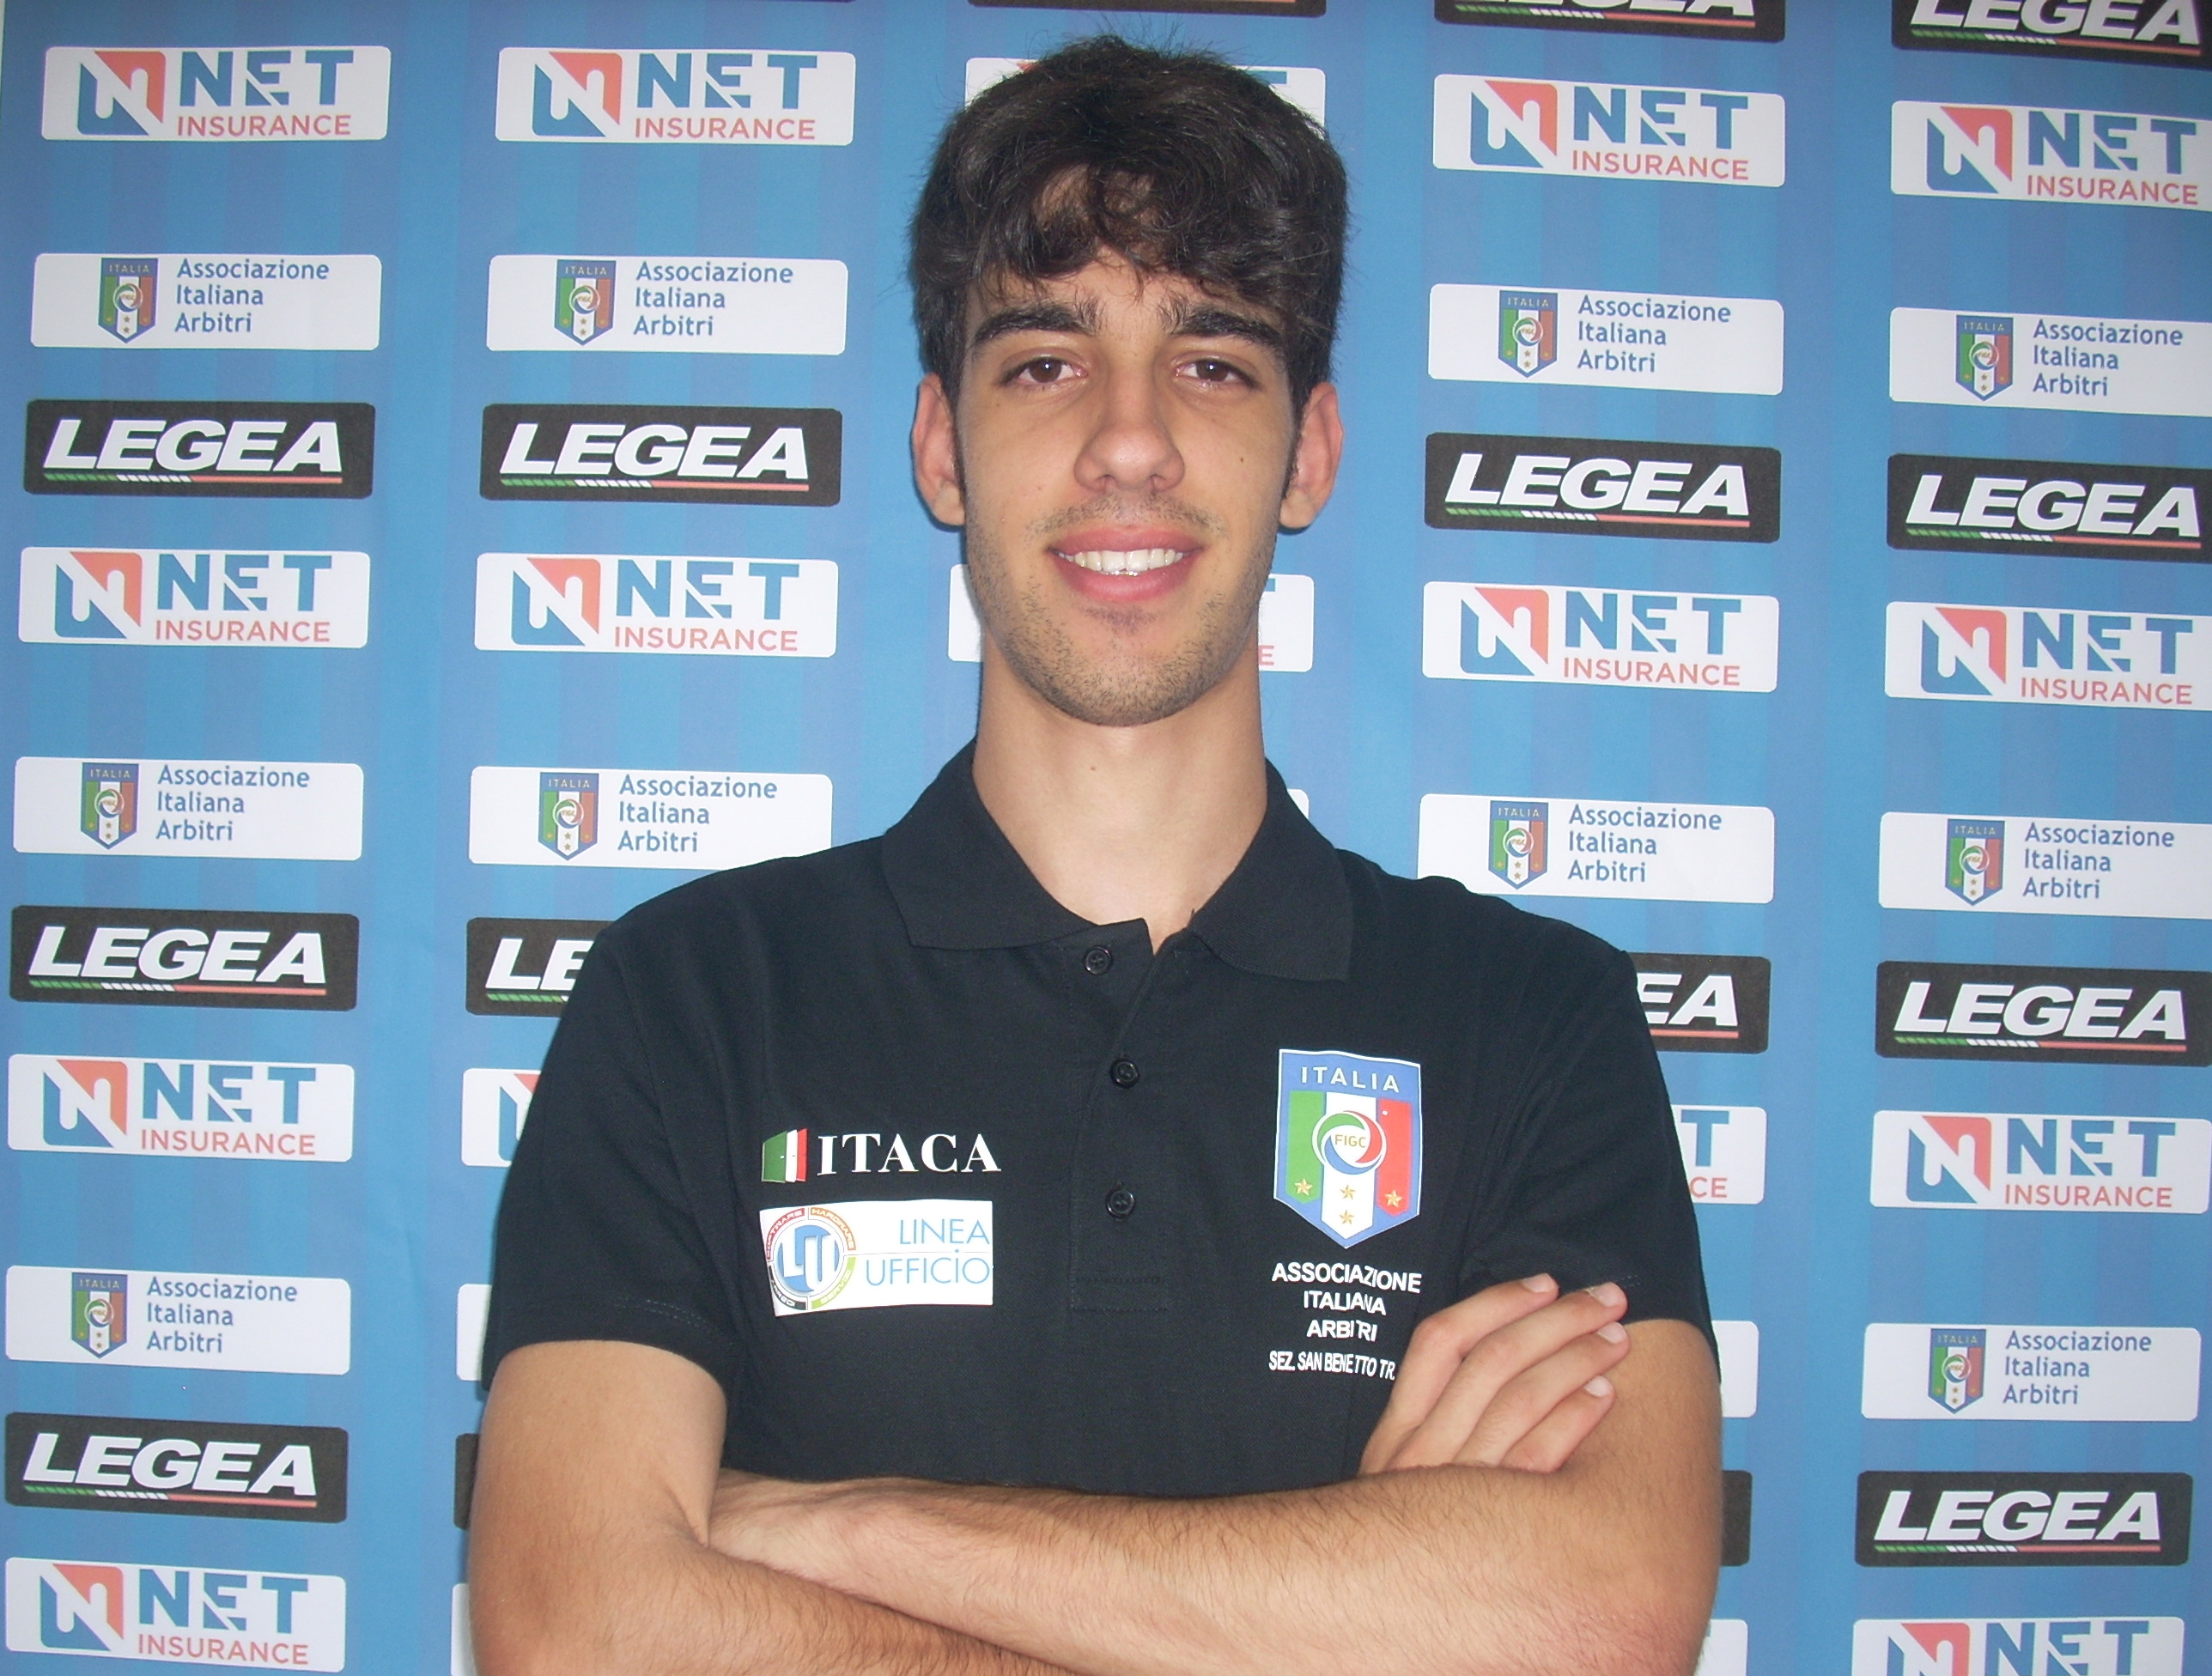 FRANCESCO BUTTAFOCO